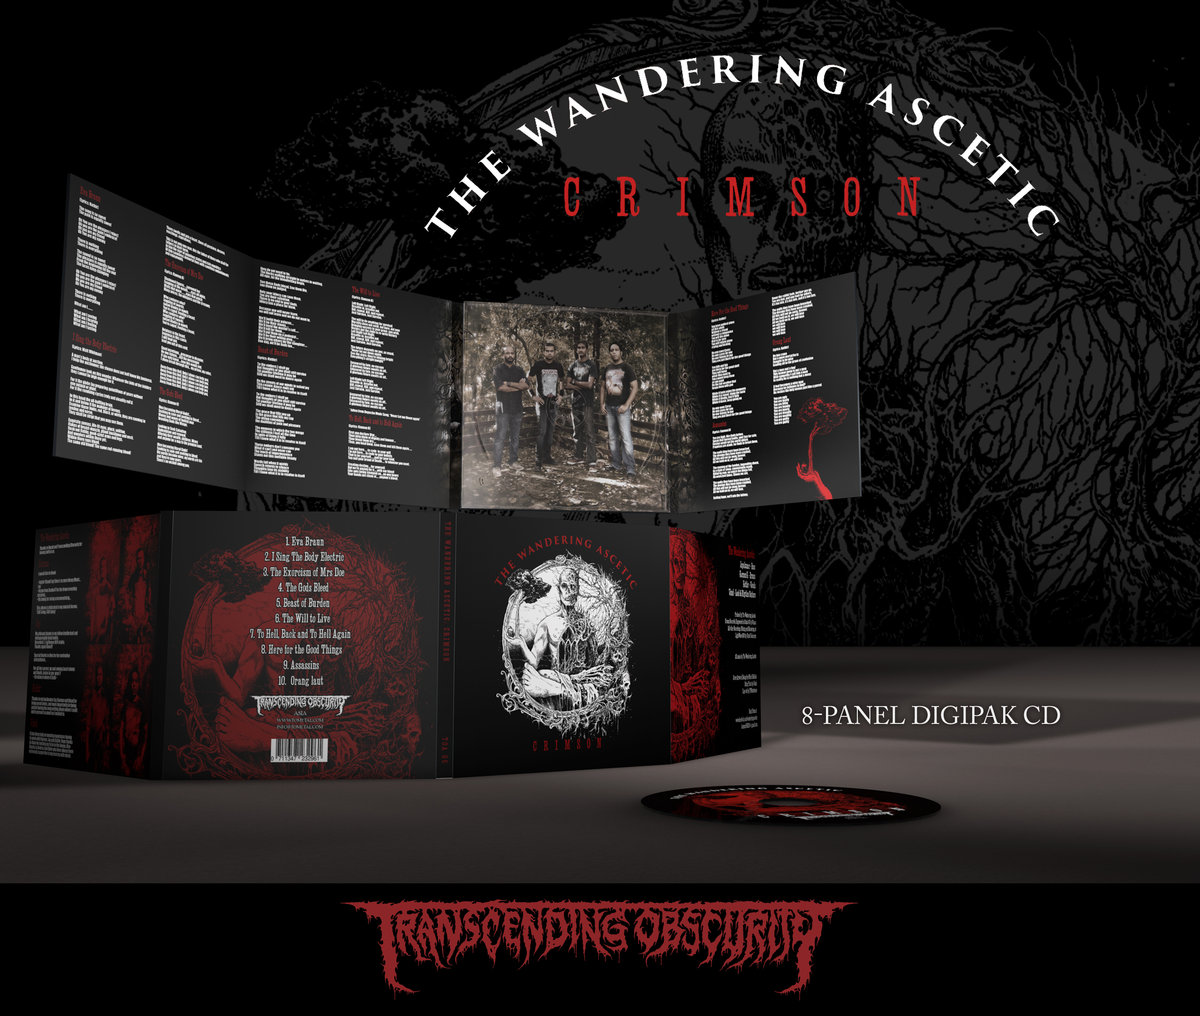 THE WANDERING ASCETIC (Singapore) - Crimson 8-Panel Digipak CD